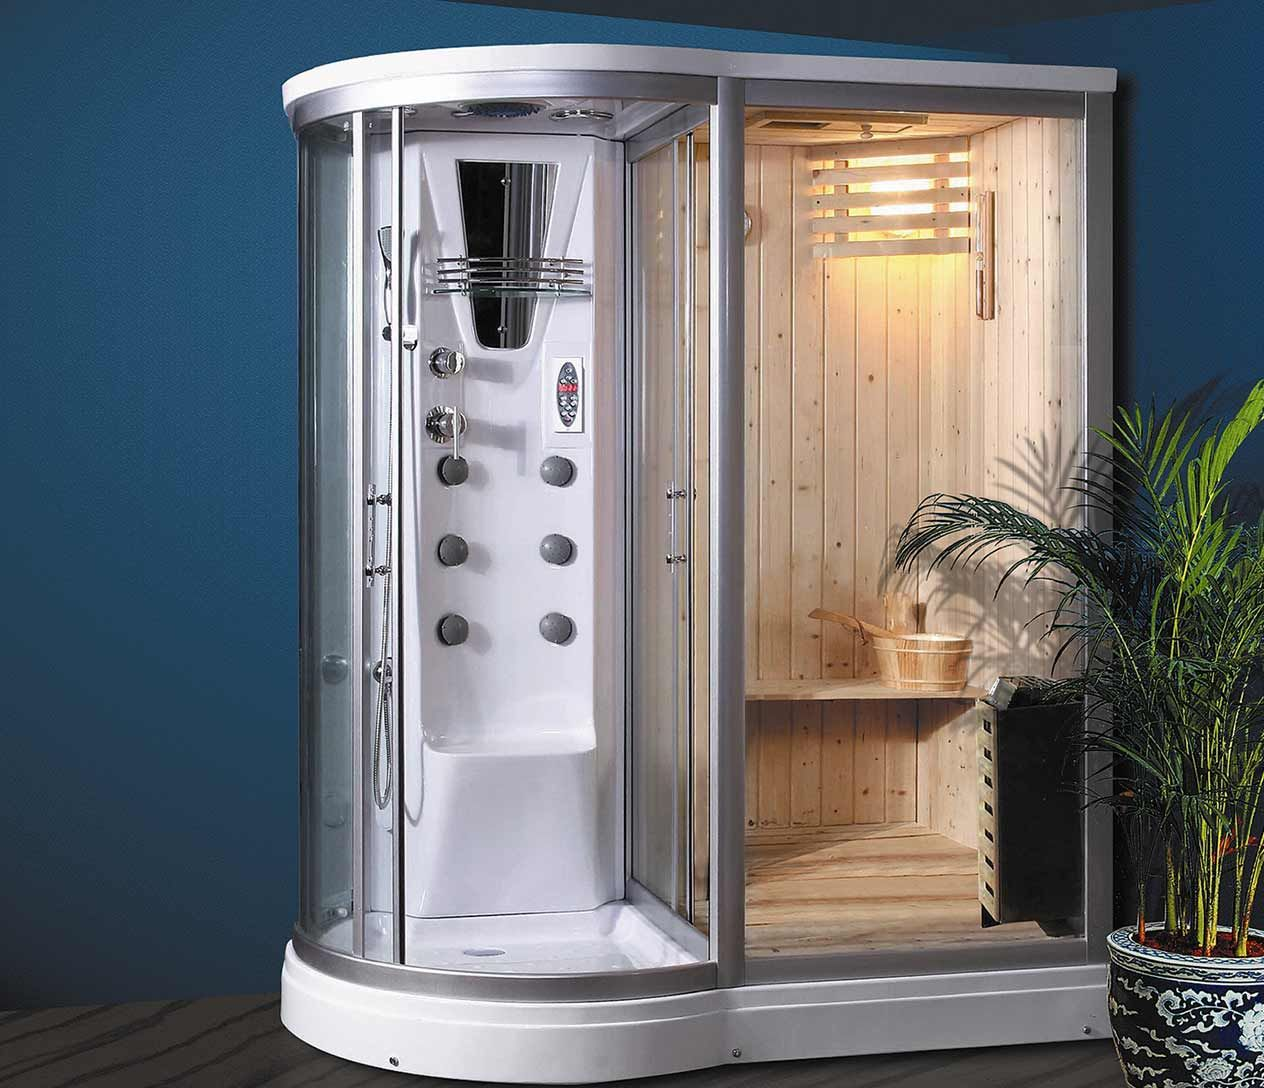 Luxury Spas, Inc. is the direct importer of steam showers, hydro ...